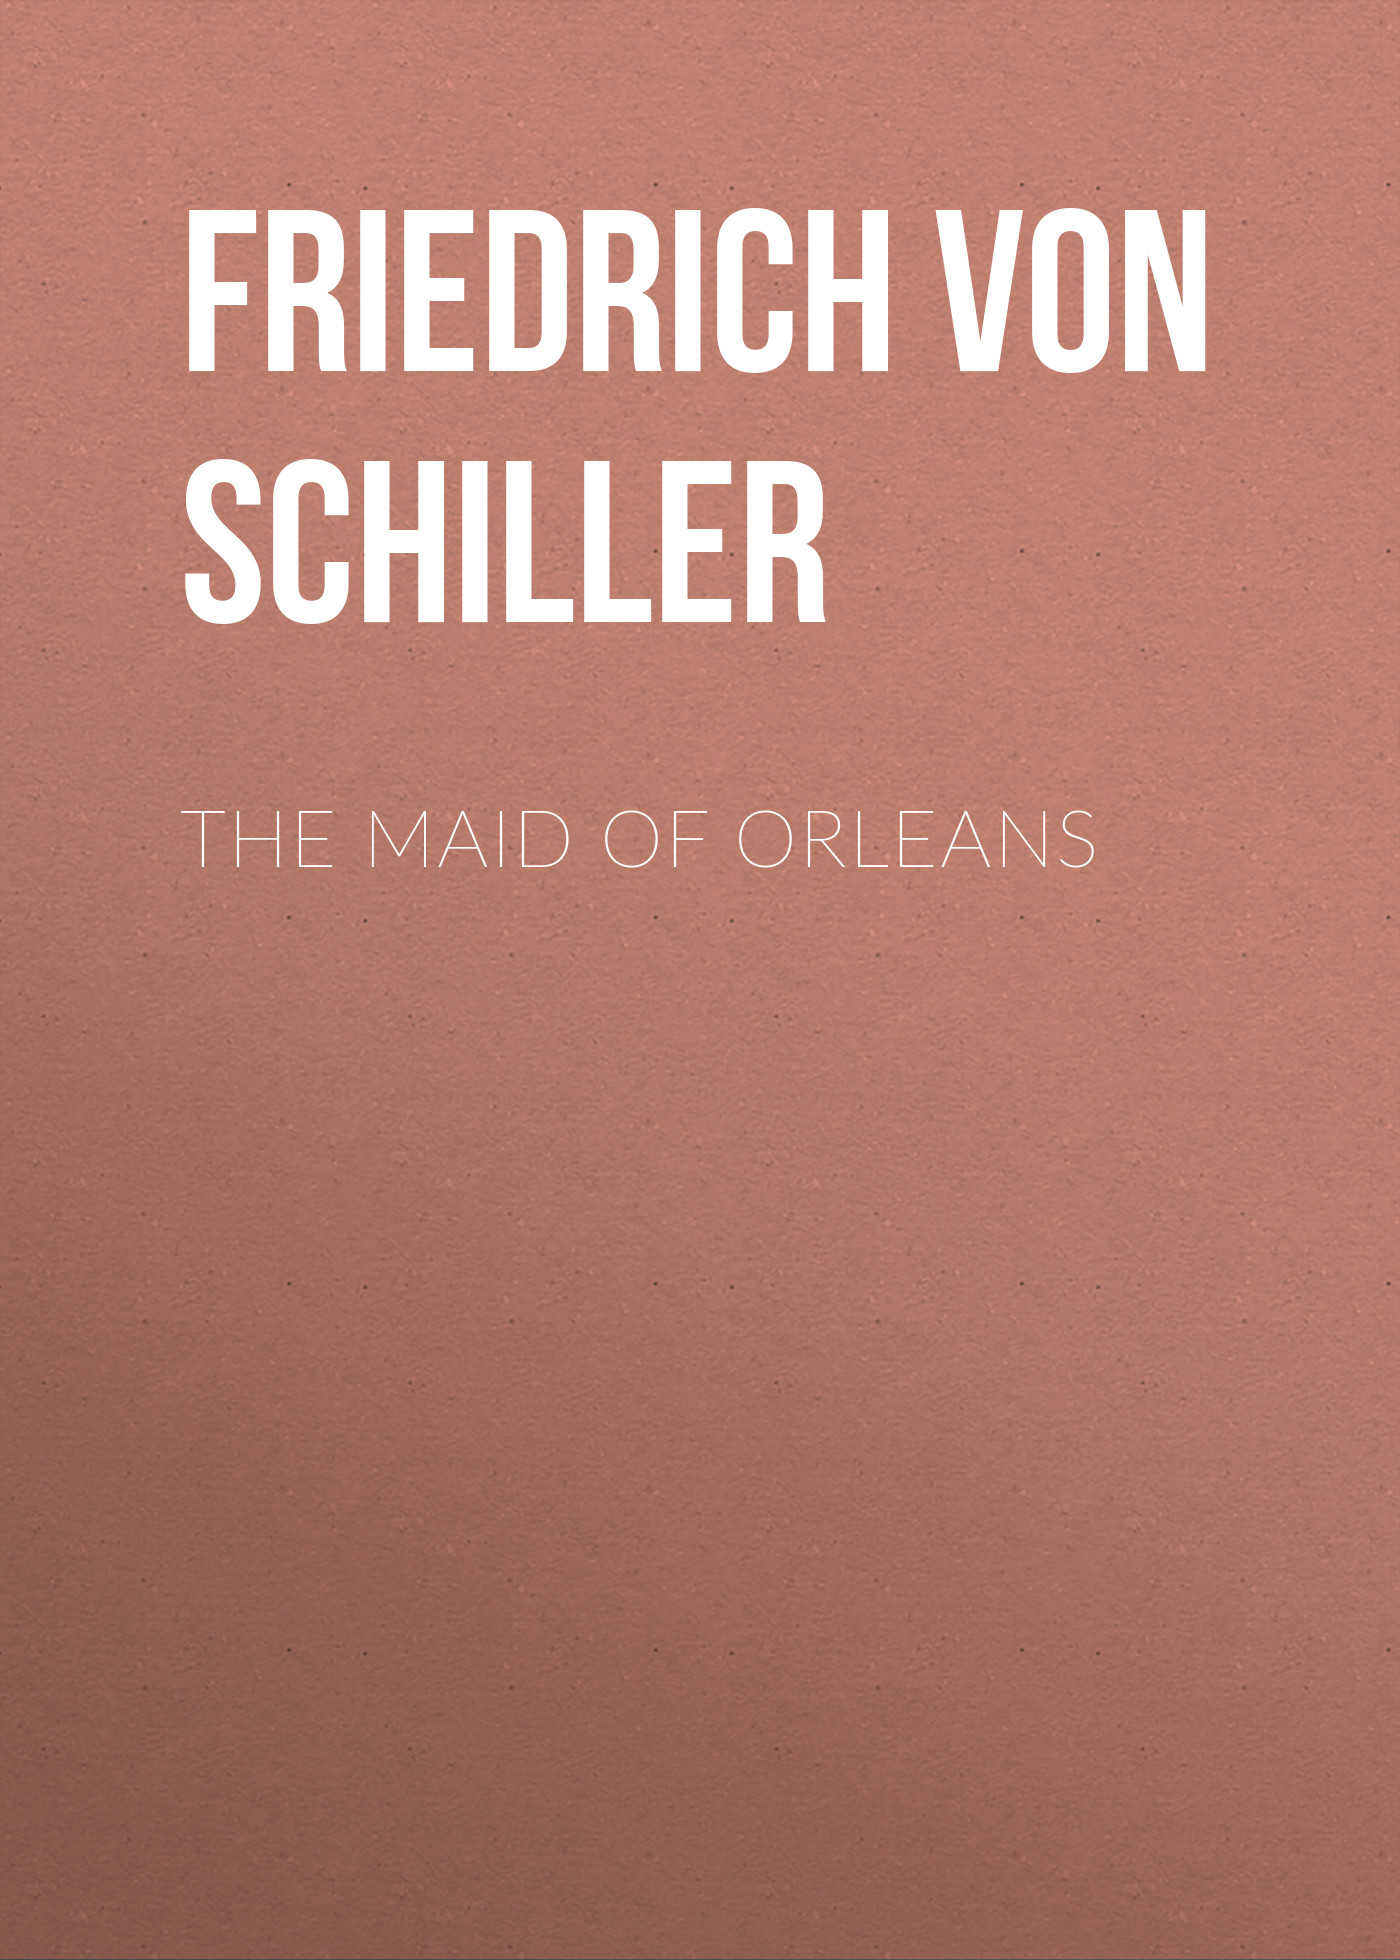 Friedrich von Schiller The Maid of Orleans